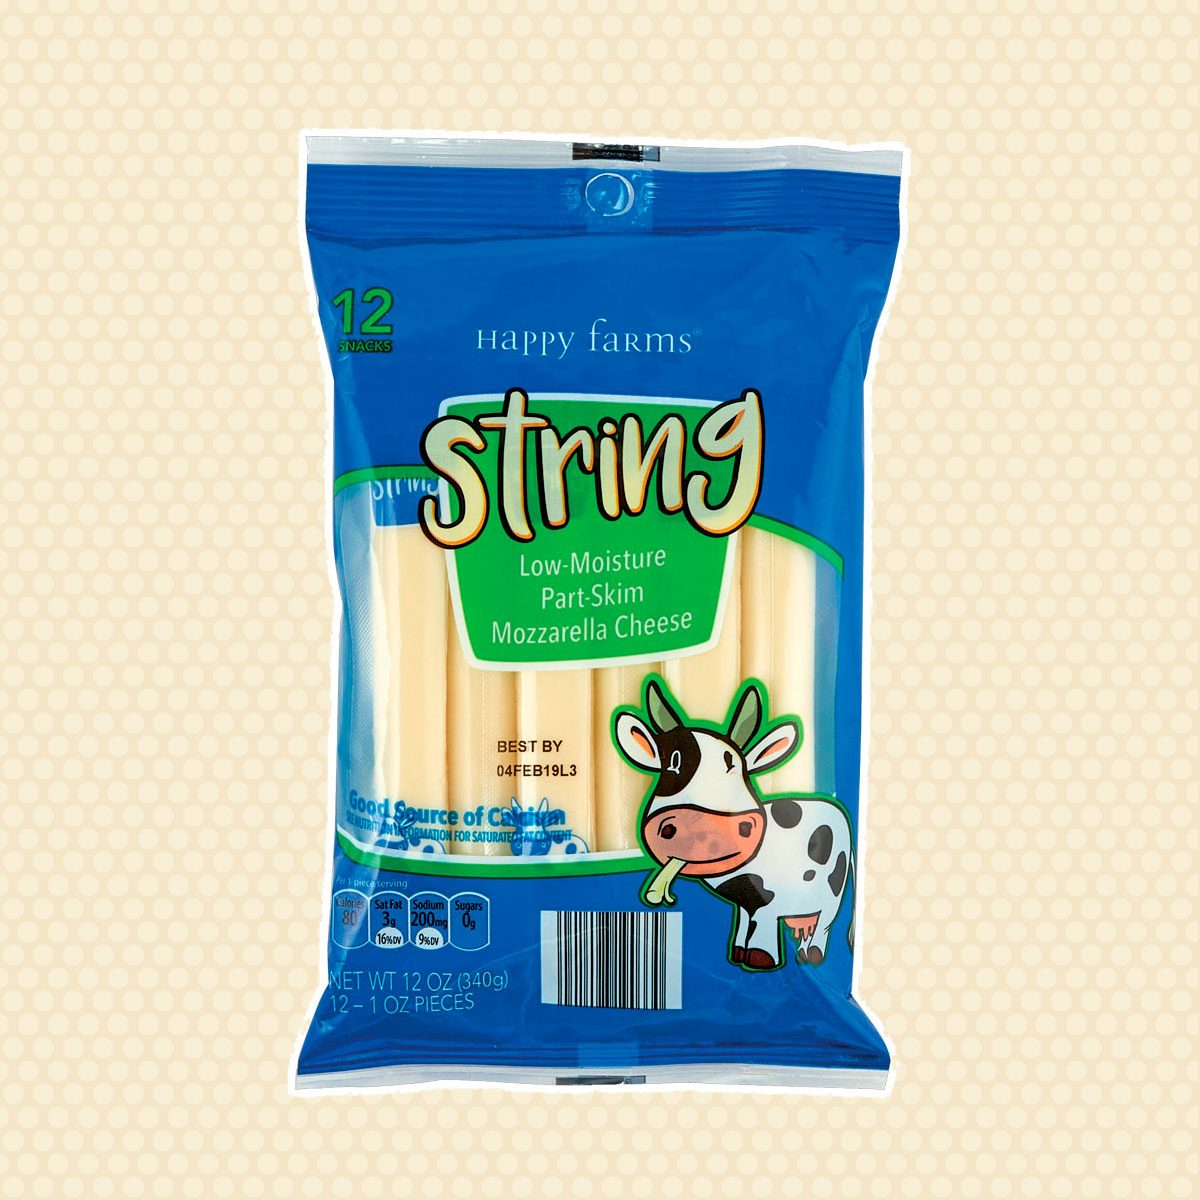 Happy Farms string cheese